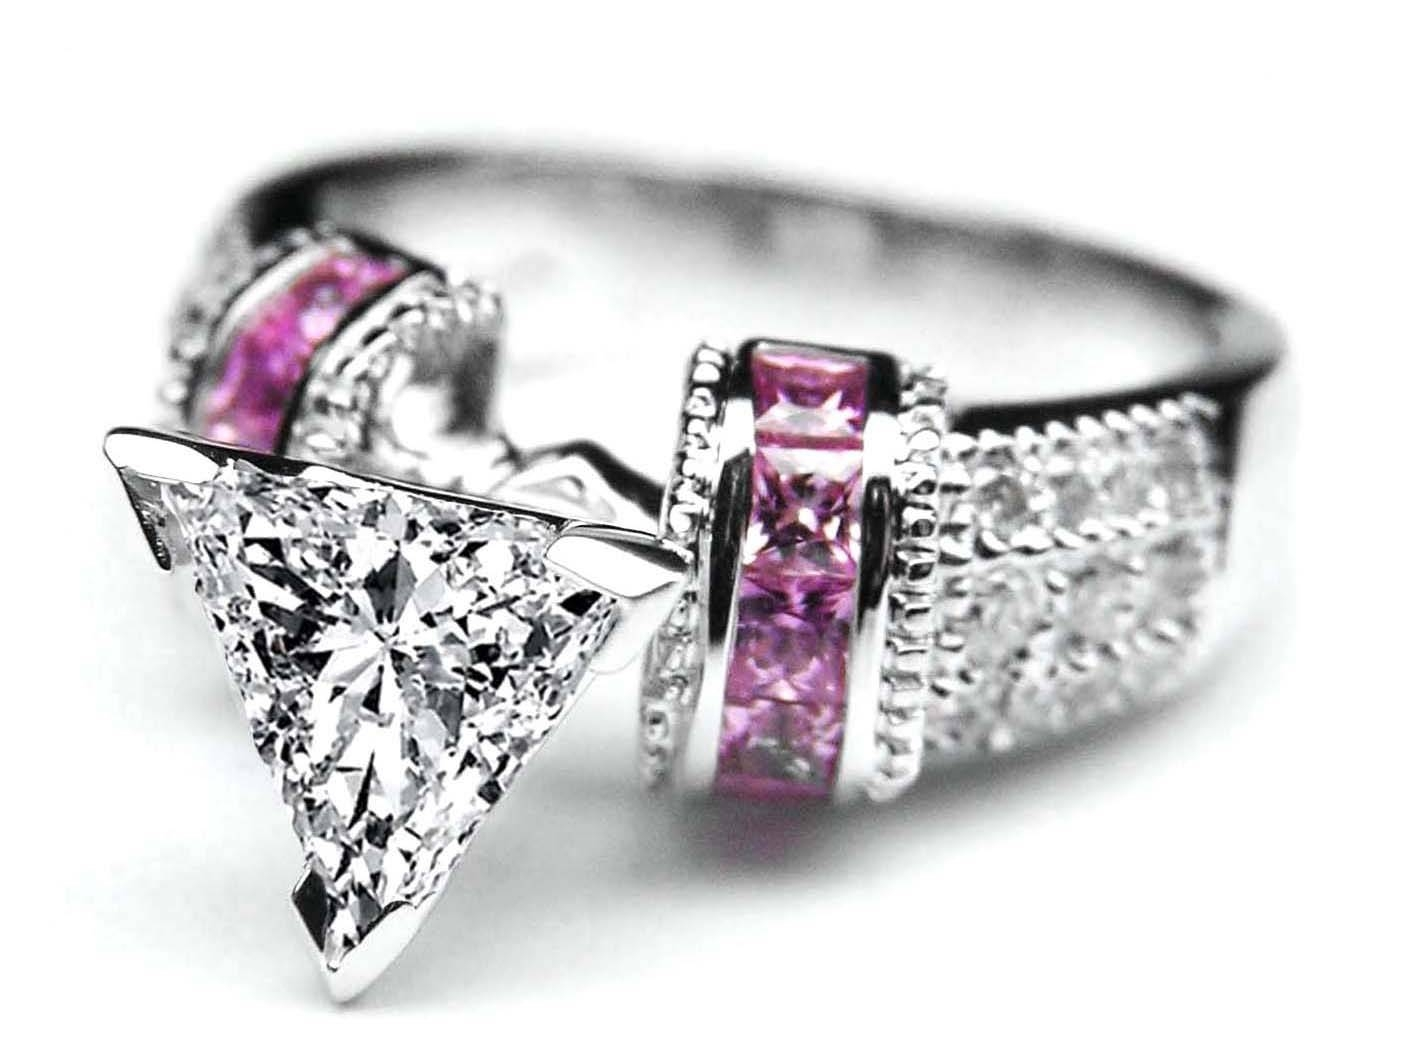 Engagement Ring  Trillion Diamond Engagement Ring Square Pink Within Pink Sapphire Engagement Rings With Diamonds (View 5 of 15)